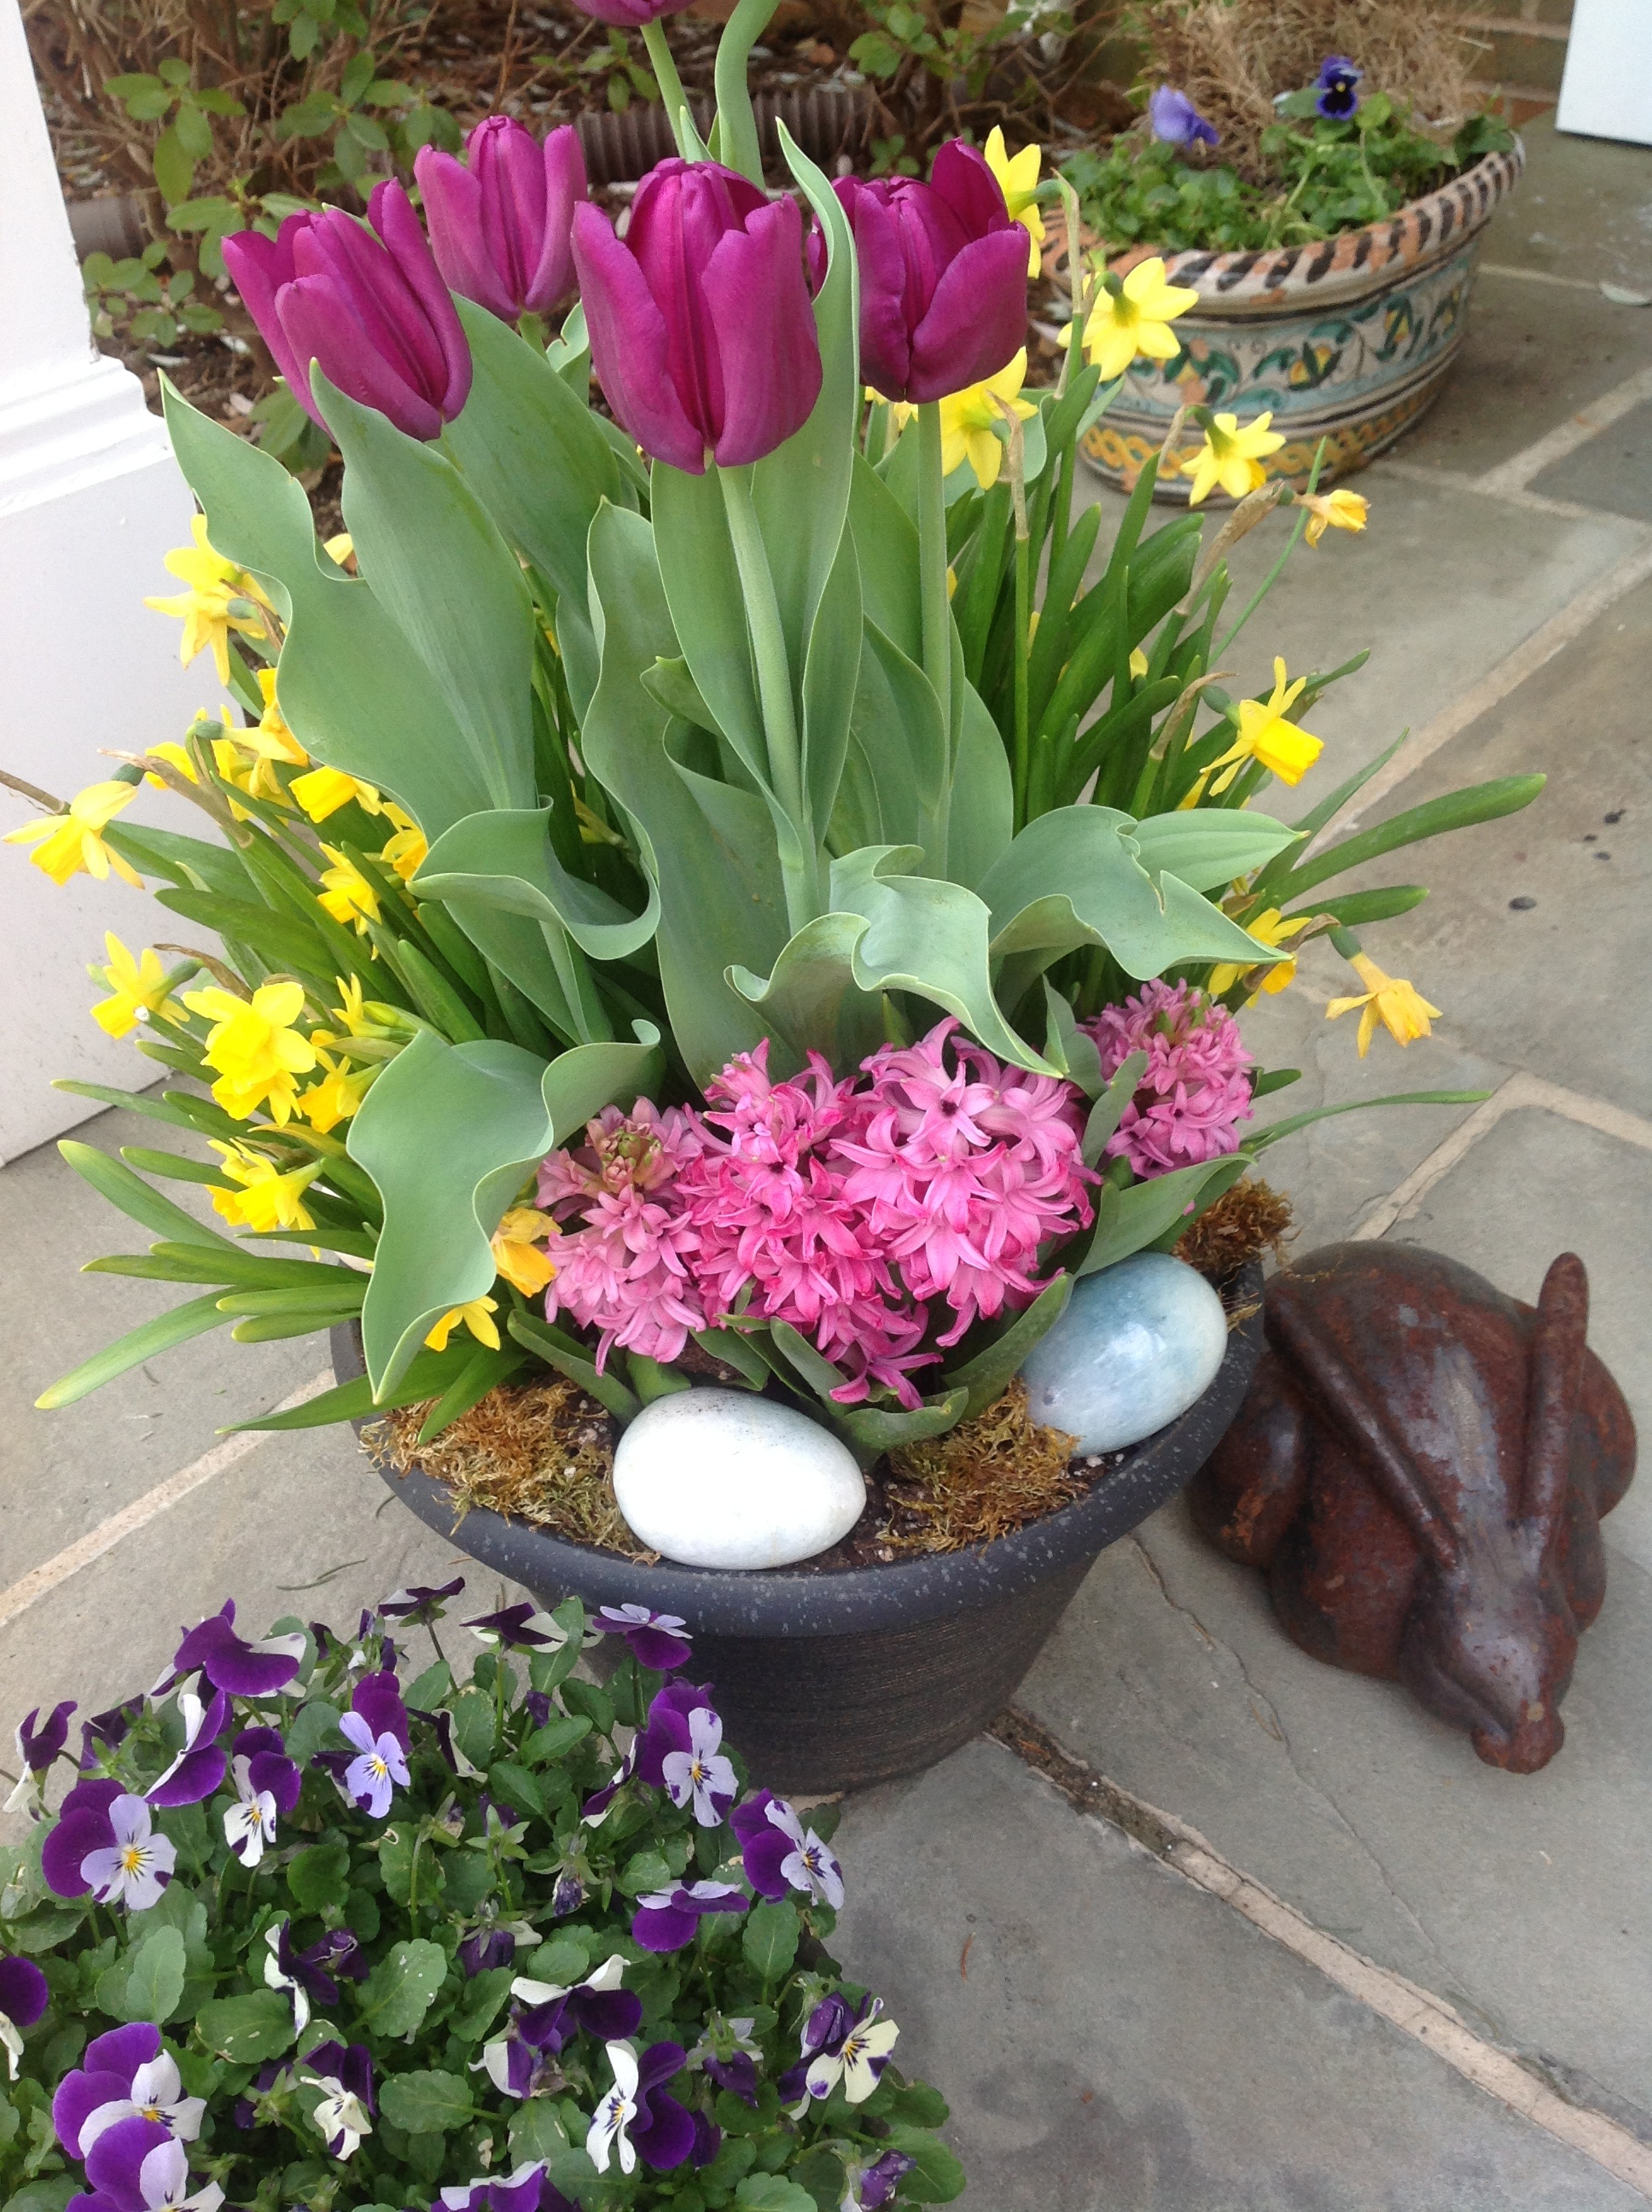 Outdoor easter decorations -  Image